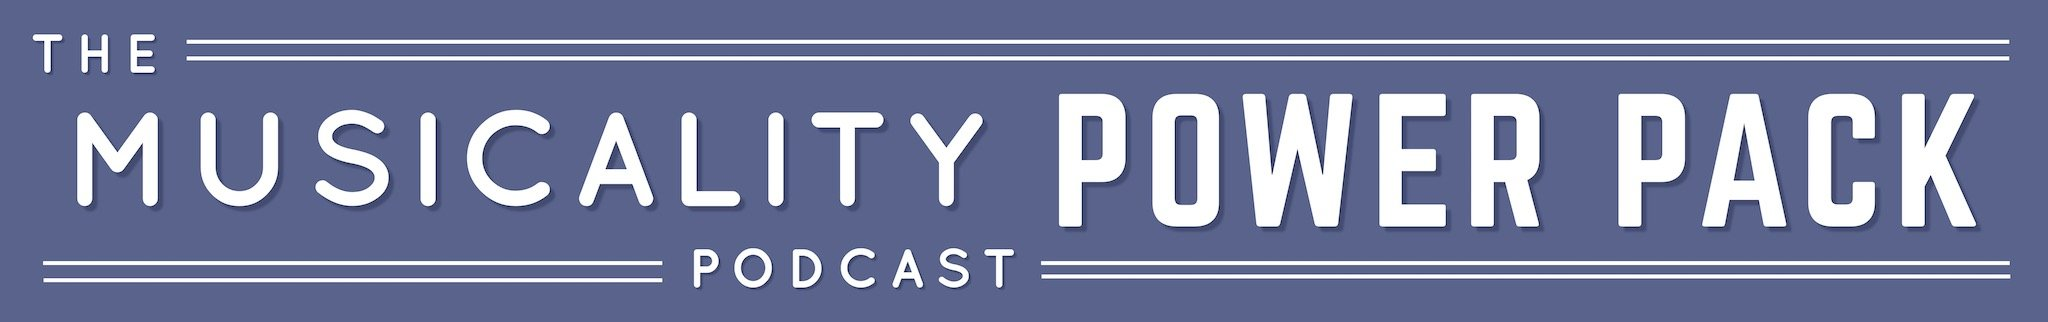 The Musicality Podcast Power Pack